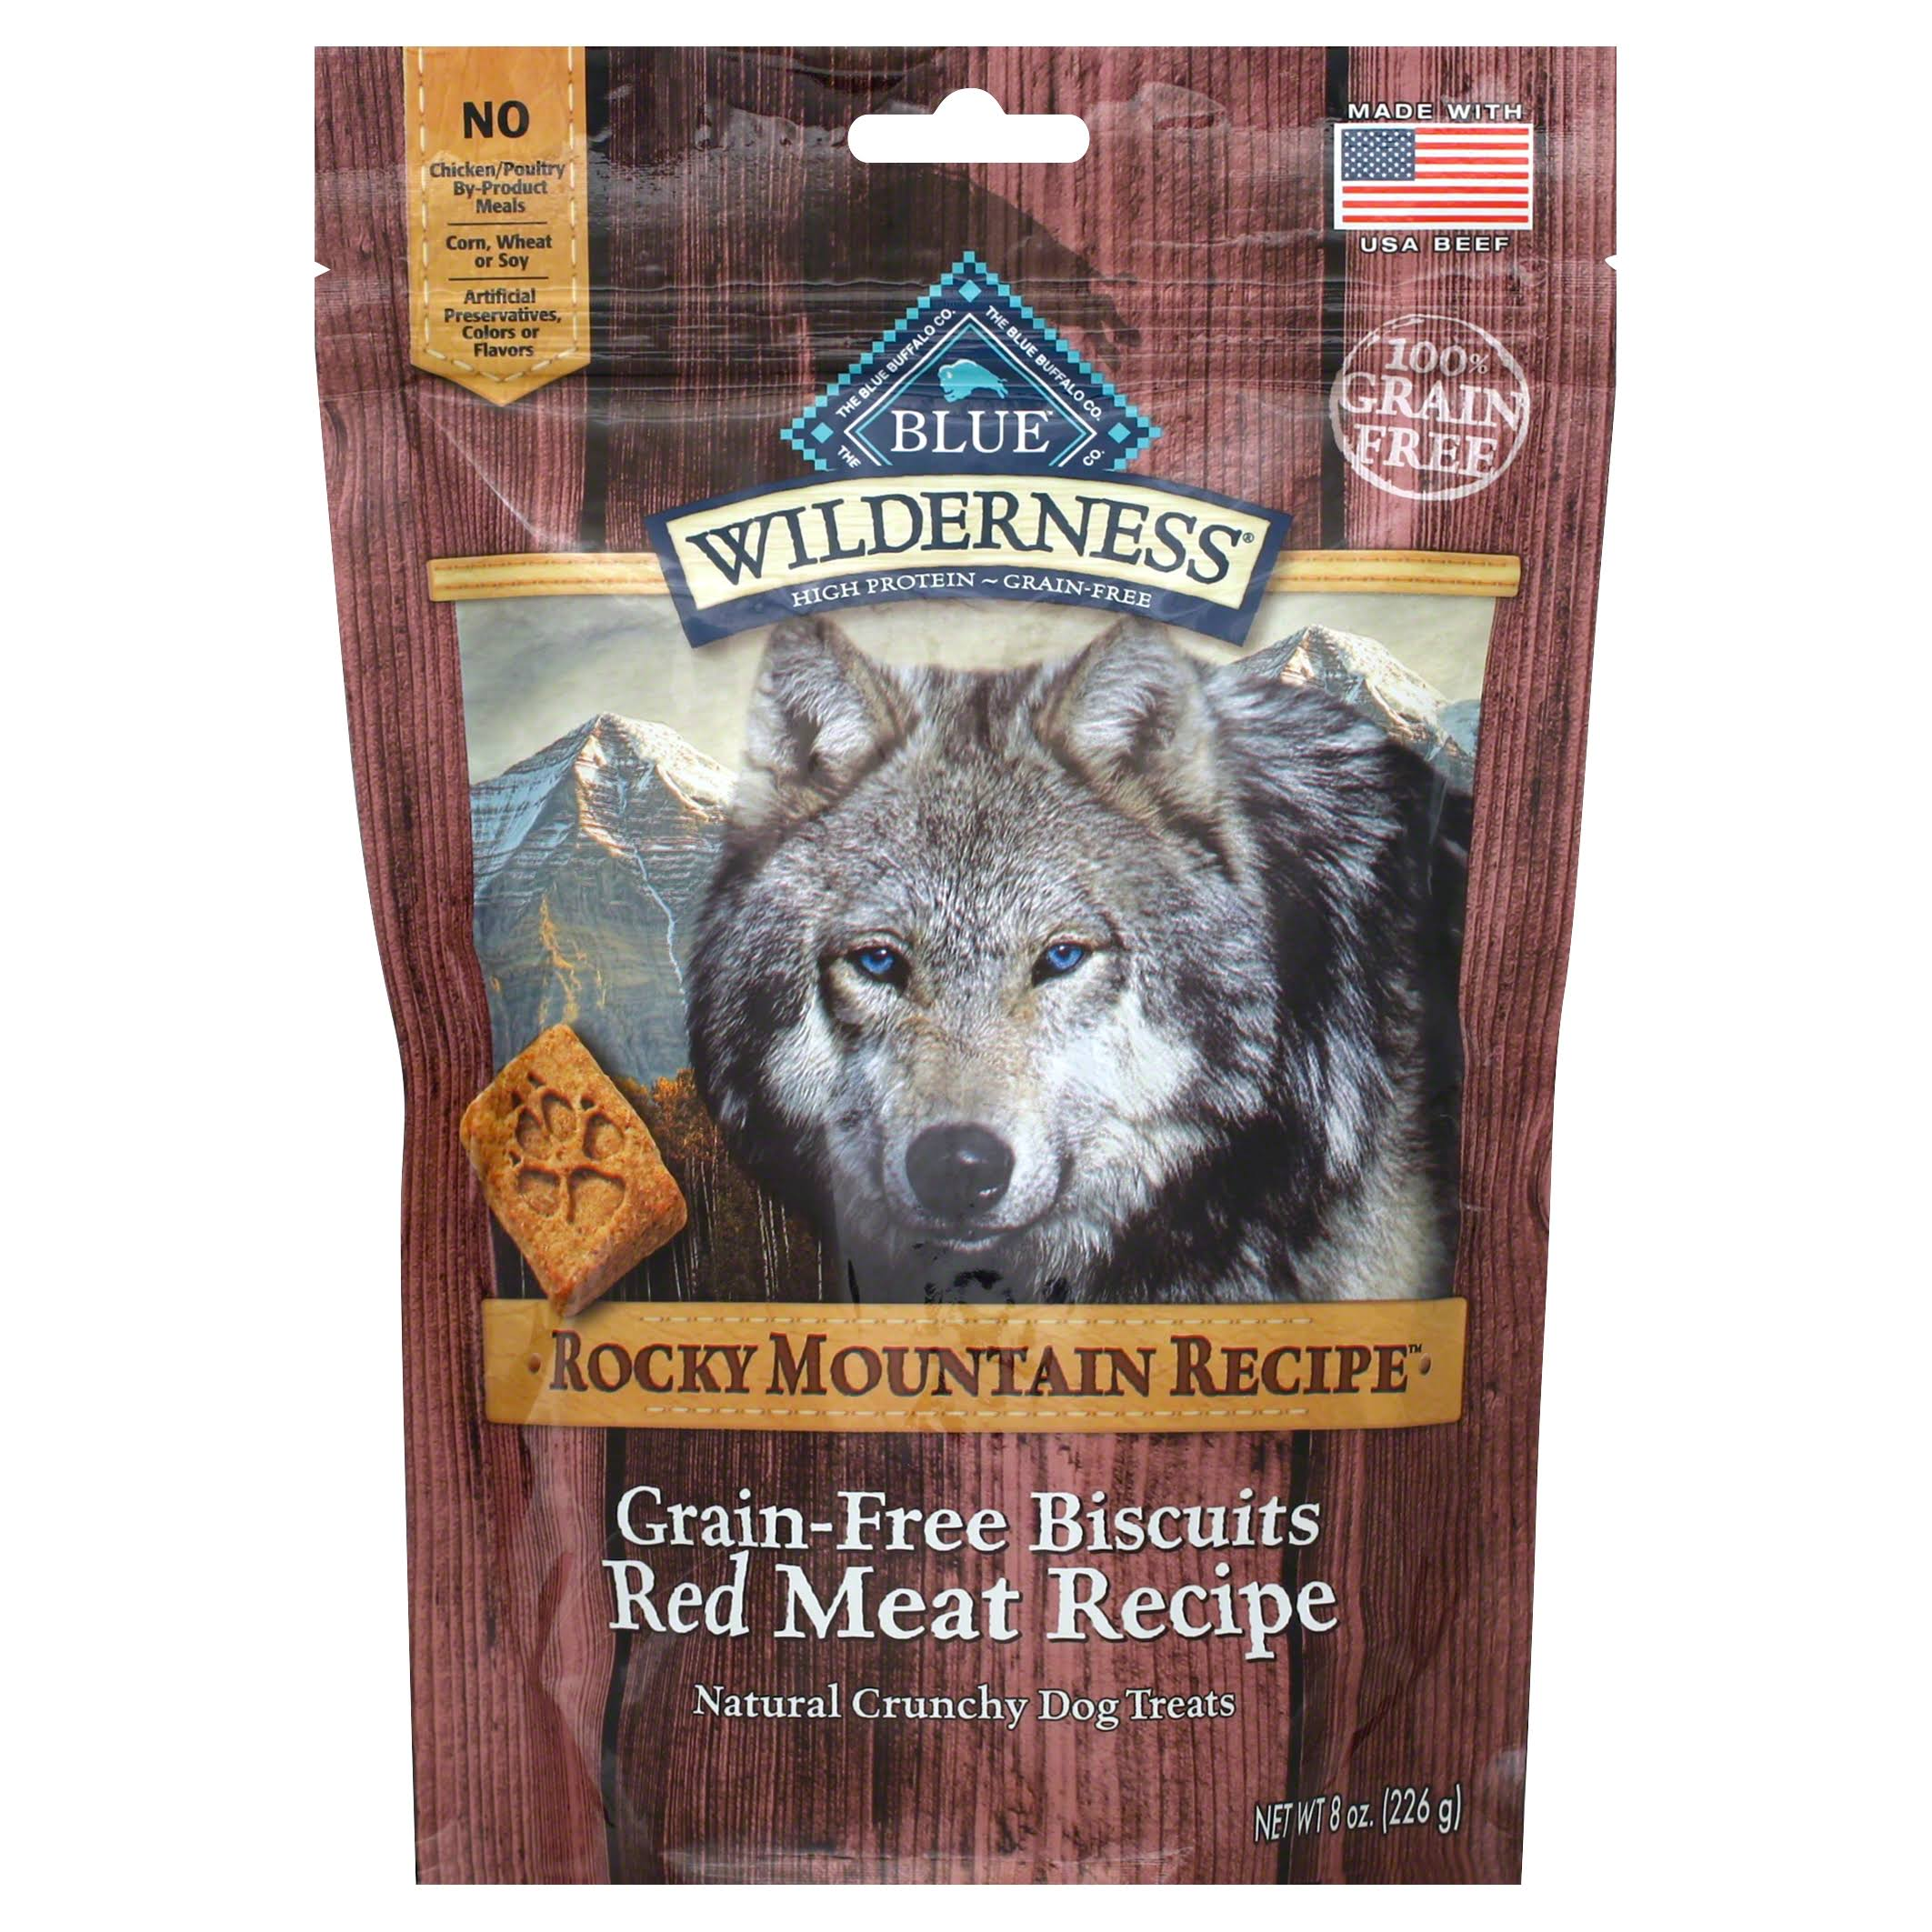 Blue Wilderness Rocky Mountain Recipe Dog Biscuits - Red Meat